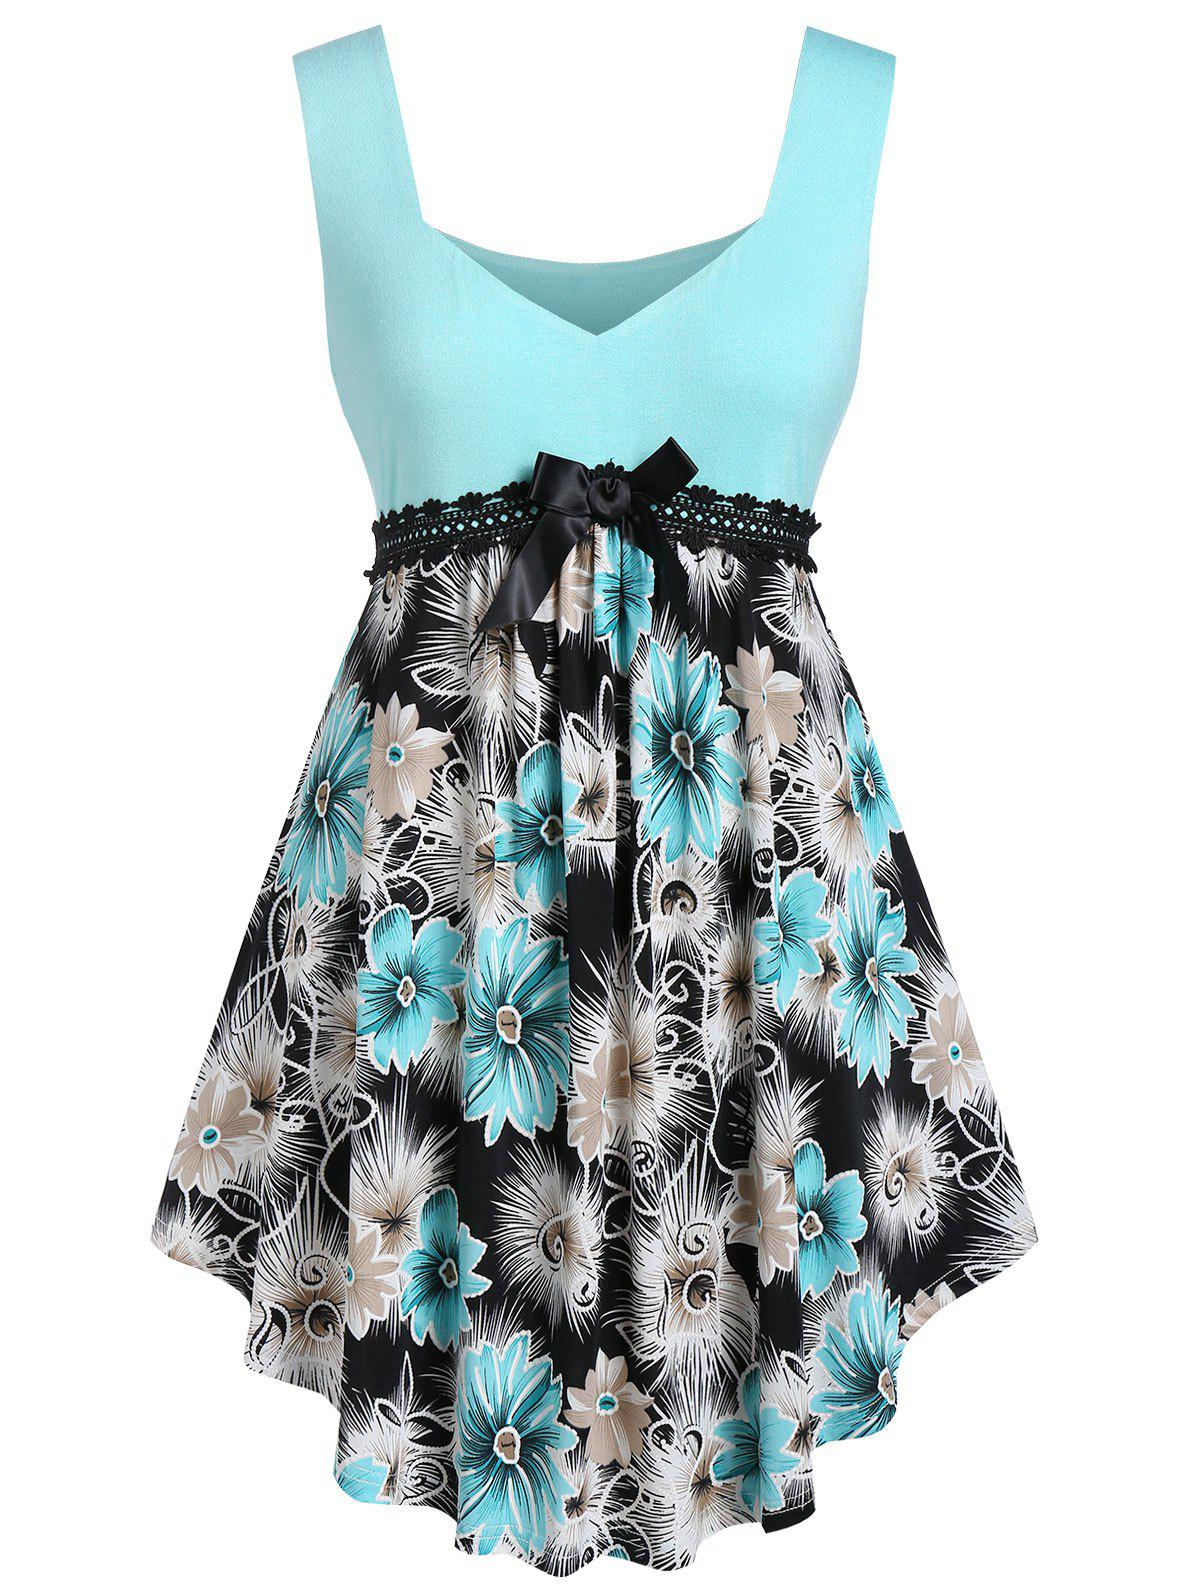 Plus Size Sweetheart Neck Floral Print Curved Tank Top - LIGHT AQUAMARINE 1X